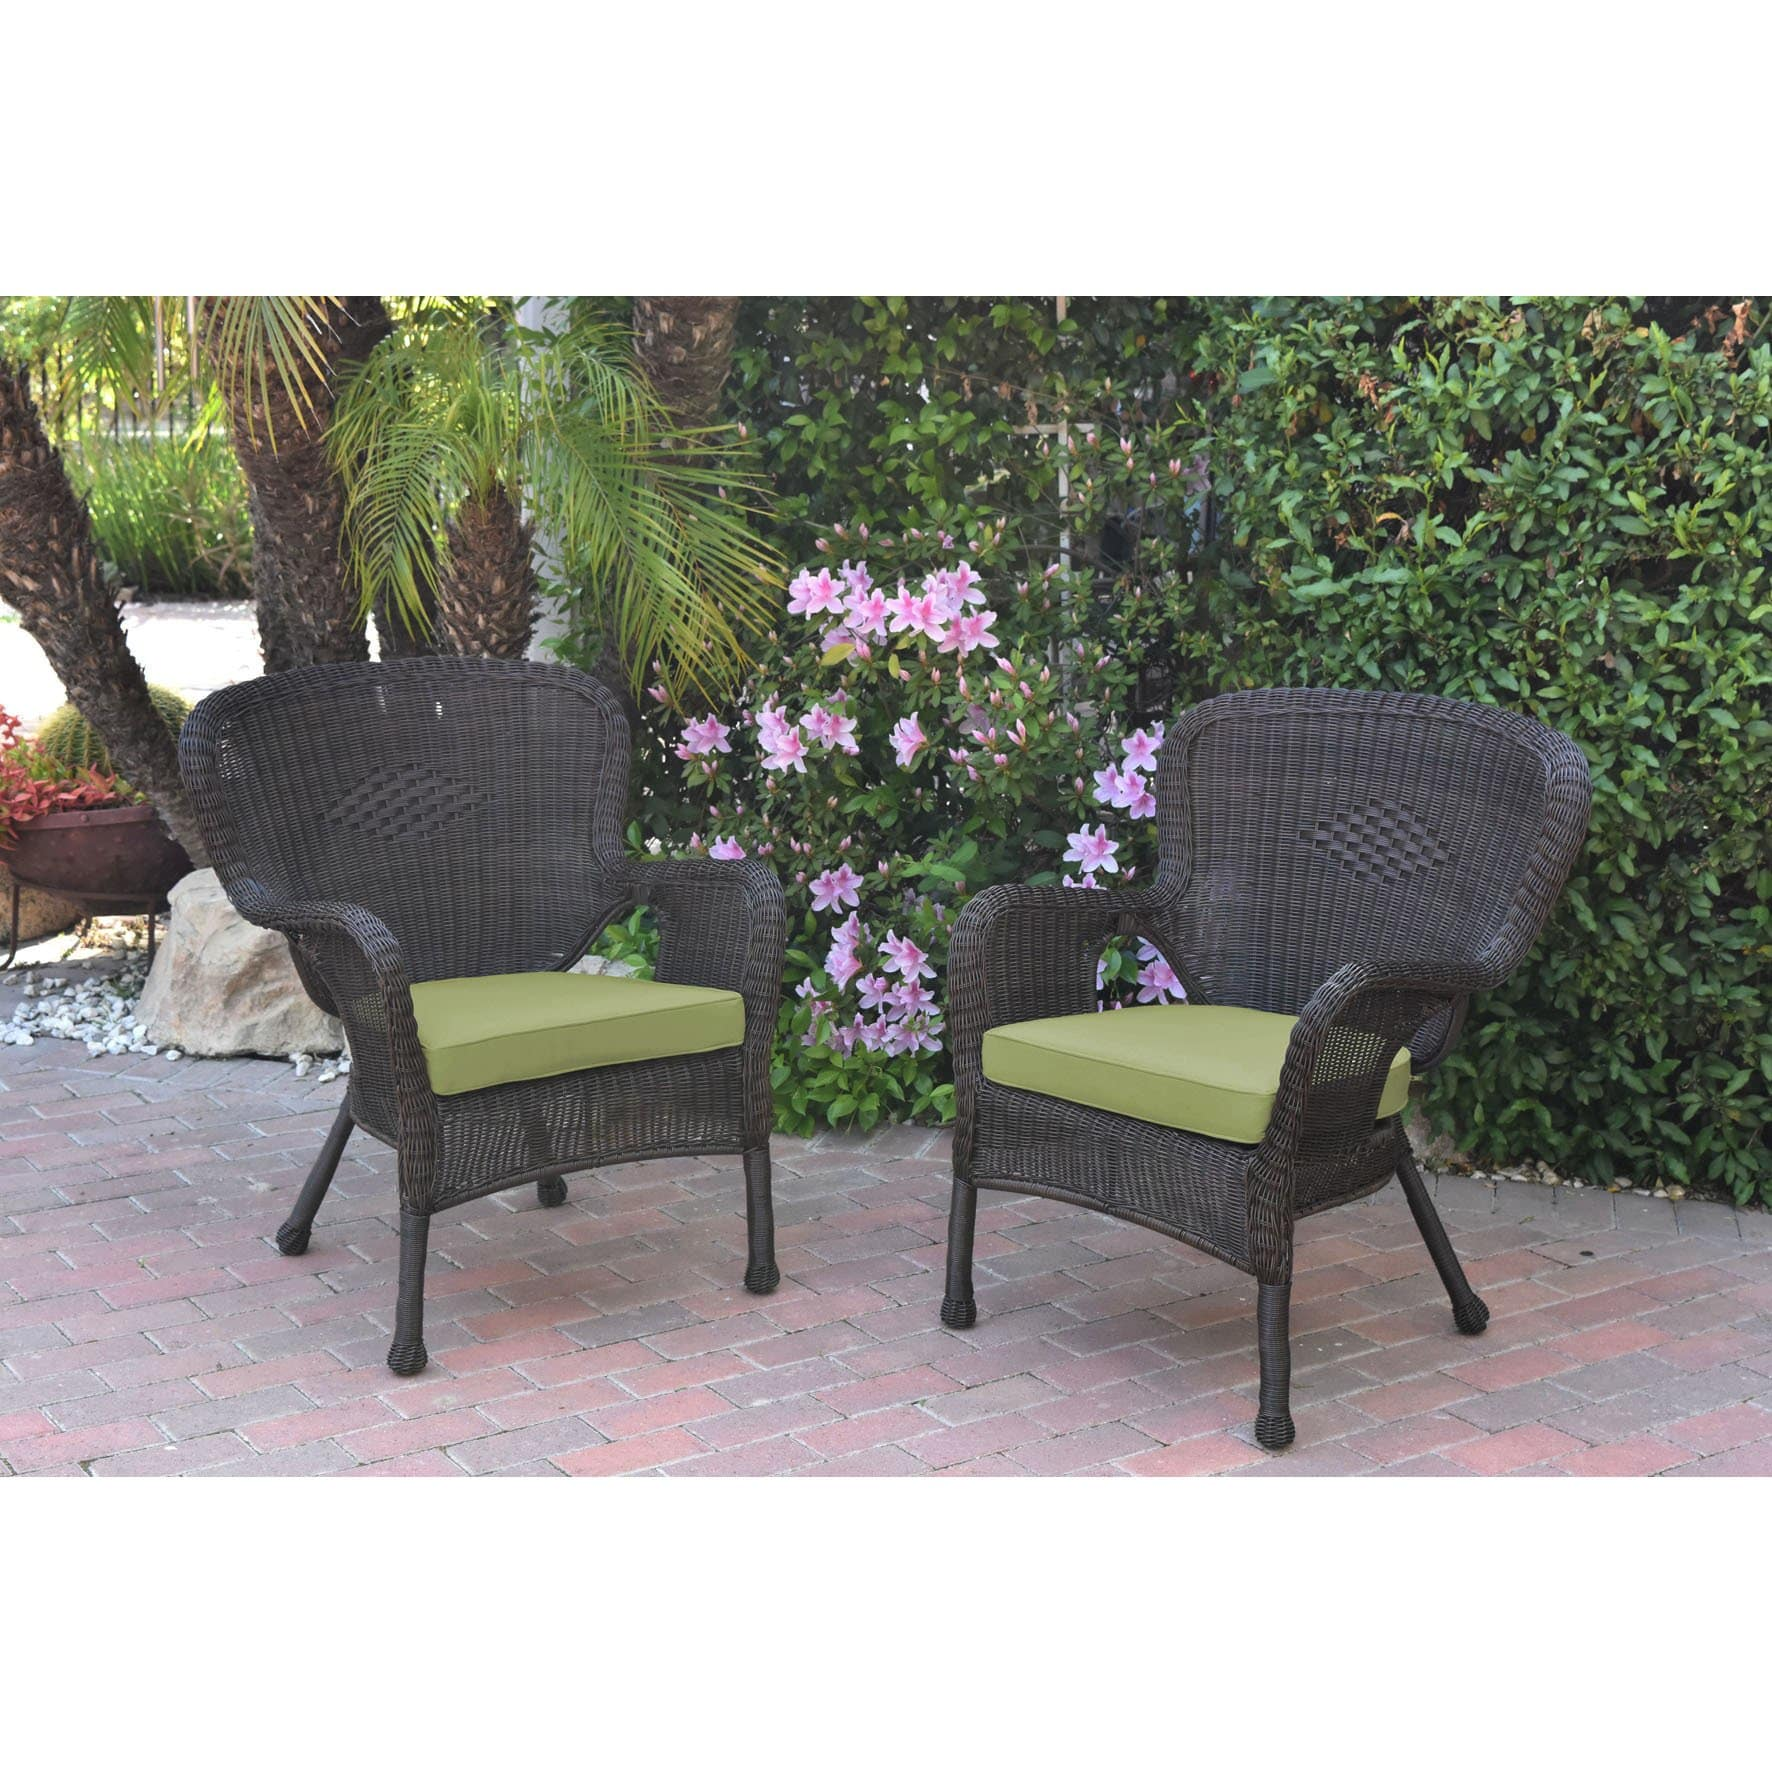 Jeco  Windsor Espresso Resin Wicker Chairs with Cushions (Set of 2)